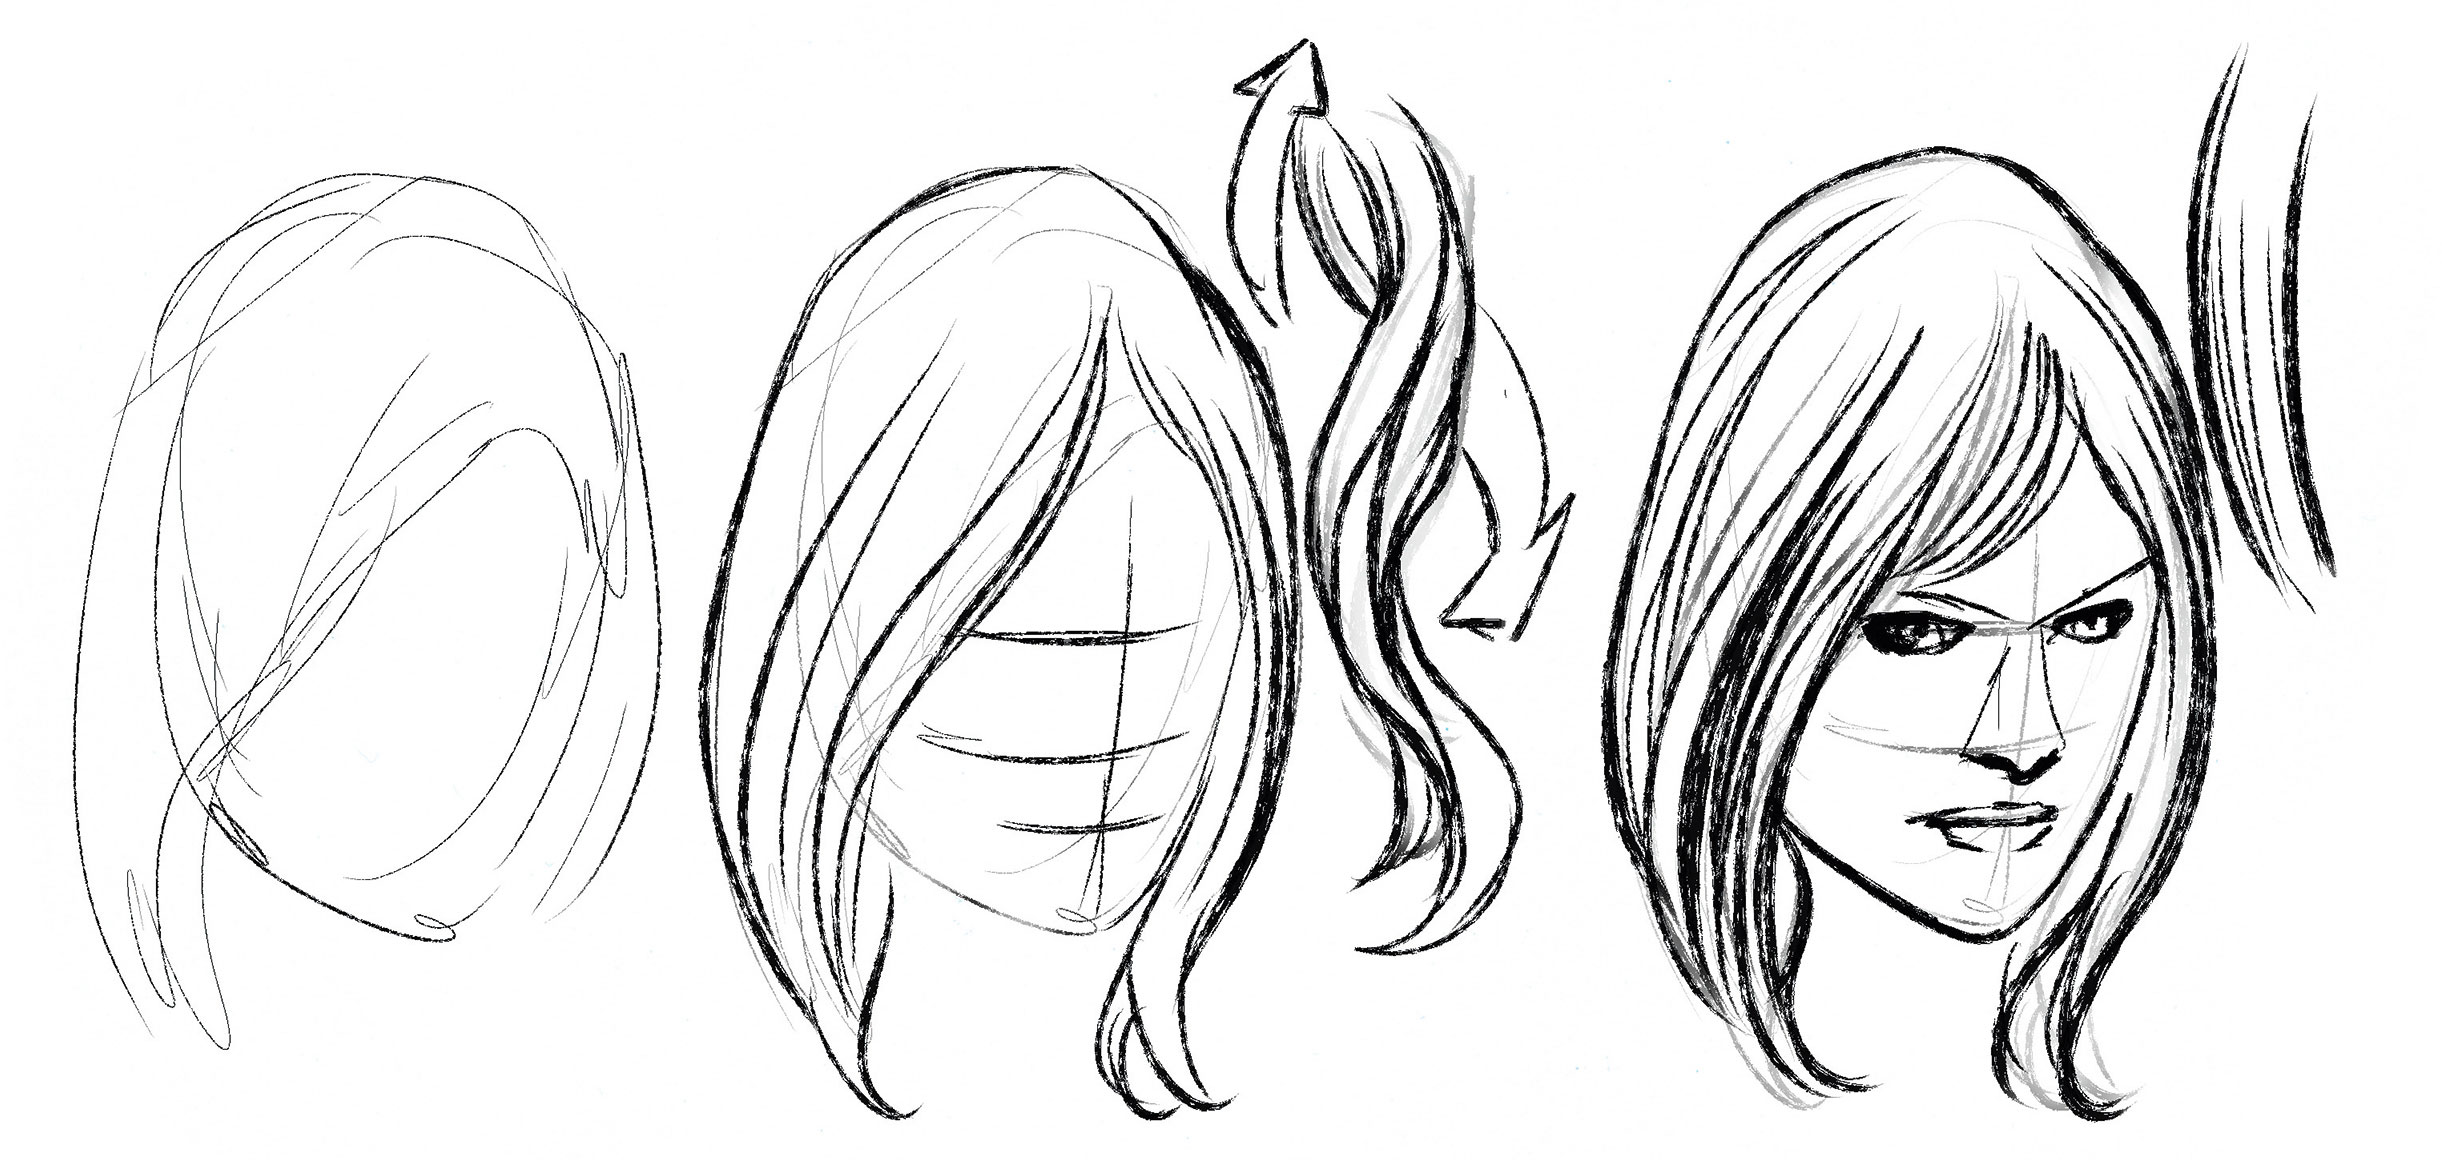 Sketches of a face with hair